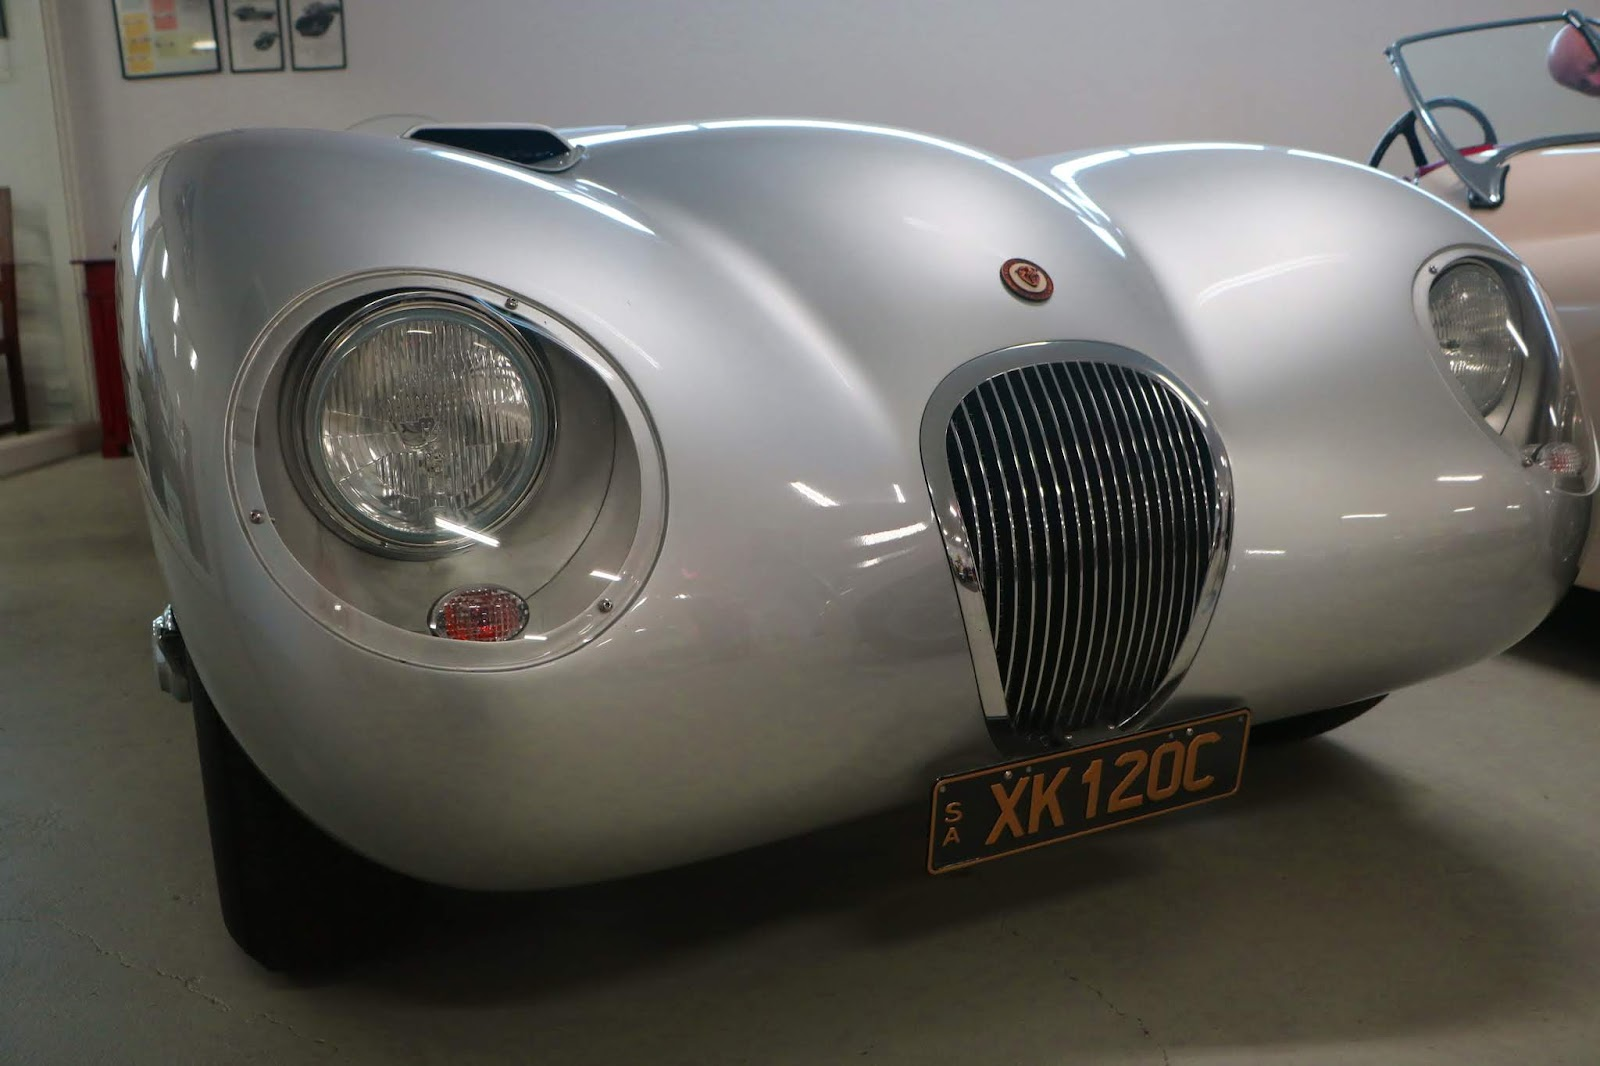 Carl_Lindner_Collection - XK120C Replica 12.JPG